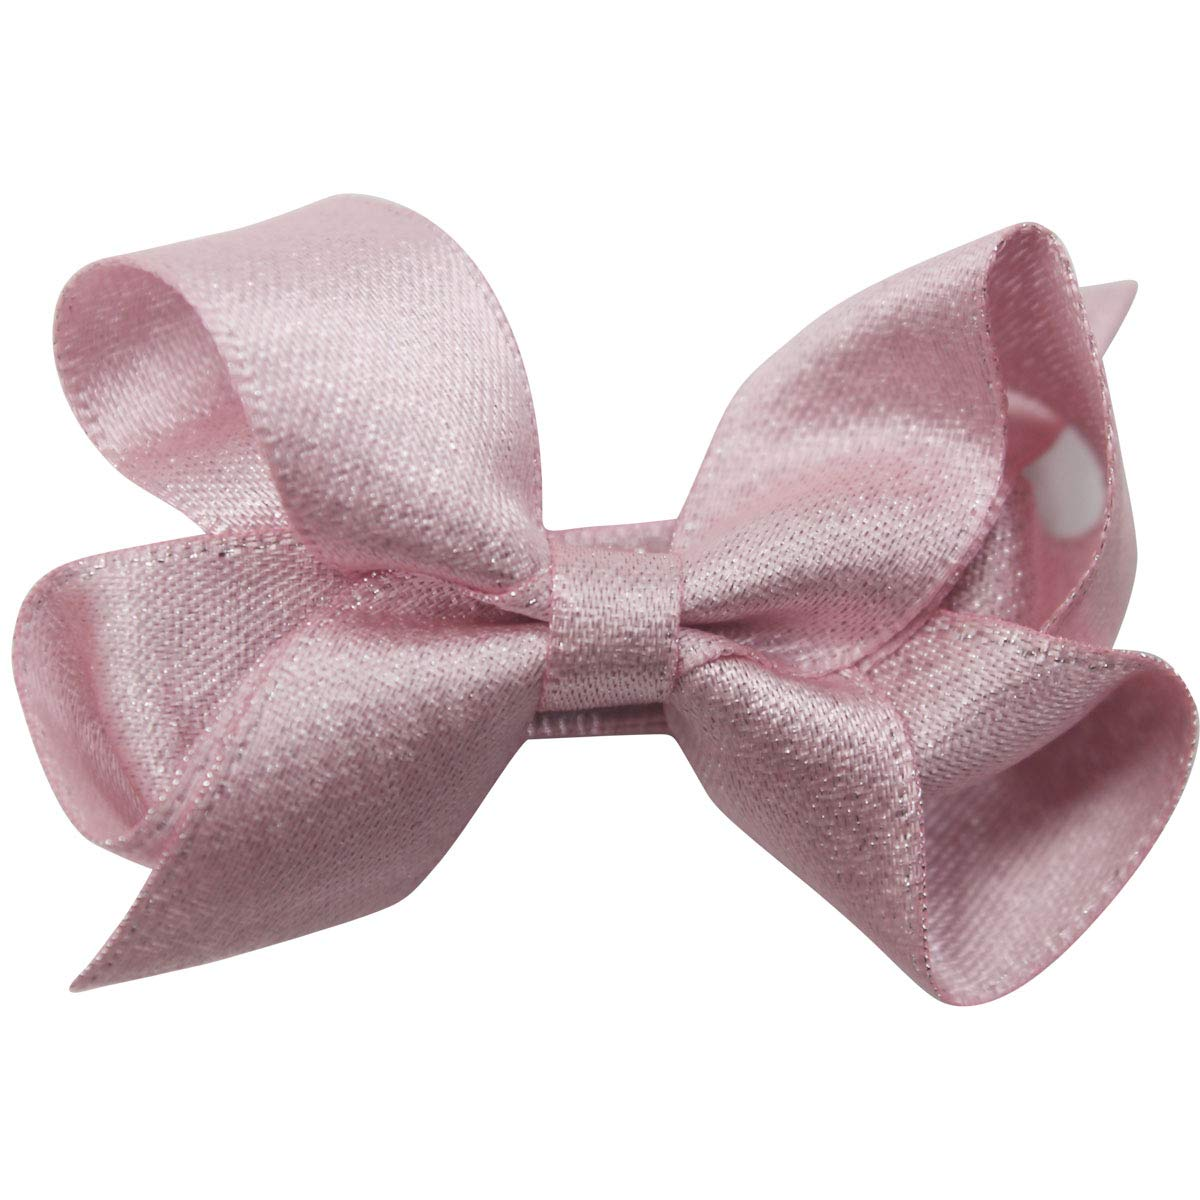 DeD 40 Pieces 2 Inch Tiny Hair Bows for Girl Baby Fine Hair Glitter Grosgrain Ribbon Fully Lined Bows Clips for Toddlers Girls Newborn Infant In Pairs